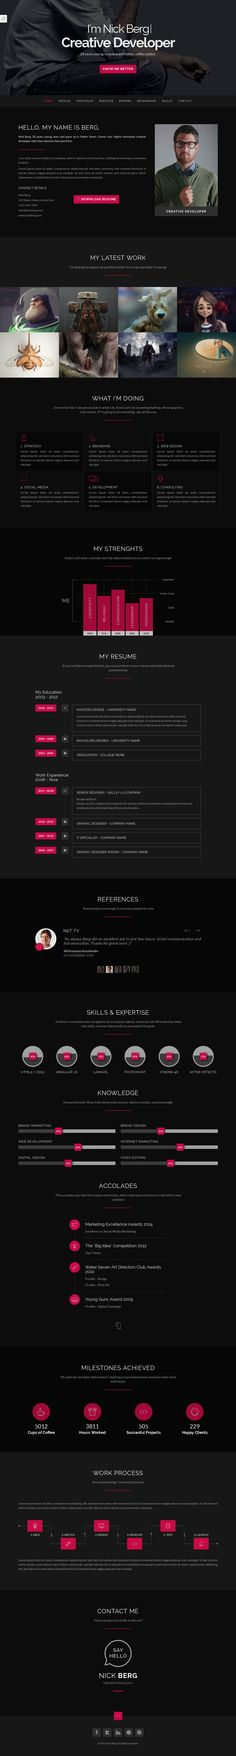 Ultra  Personal CvResume  Vcard Template  Template For Cv